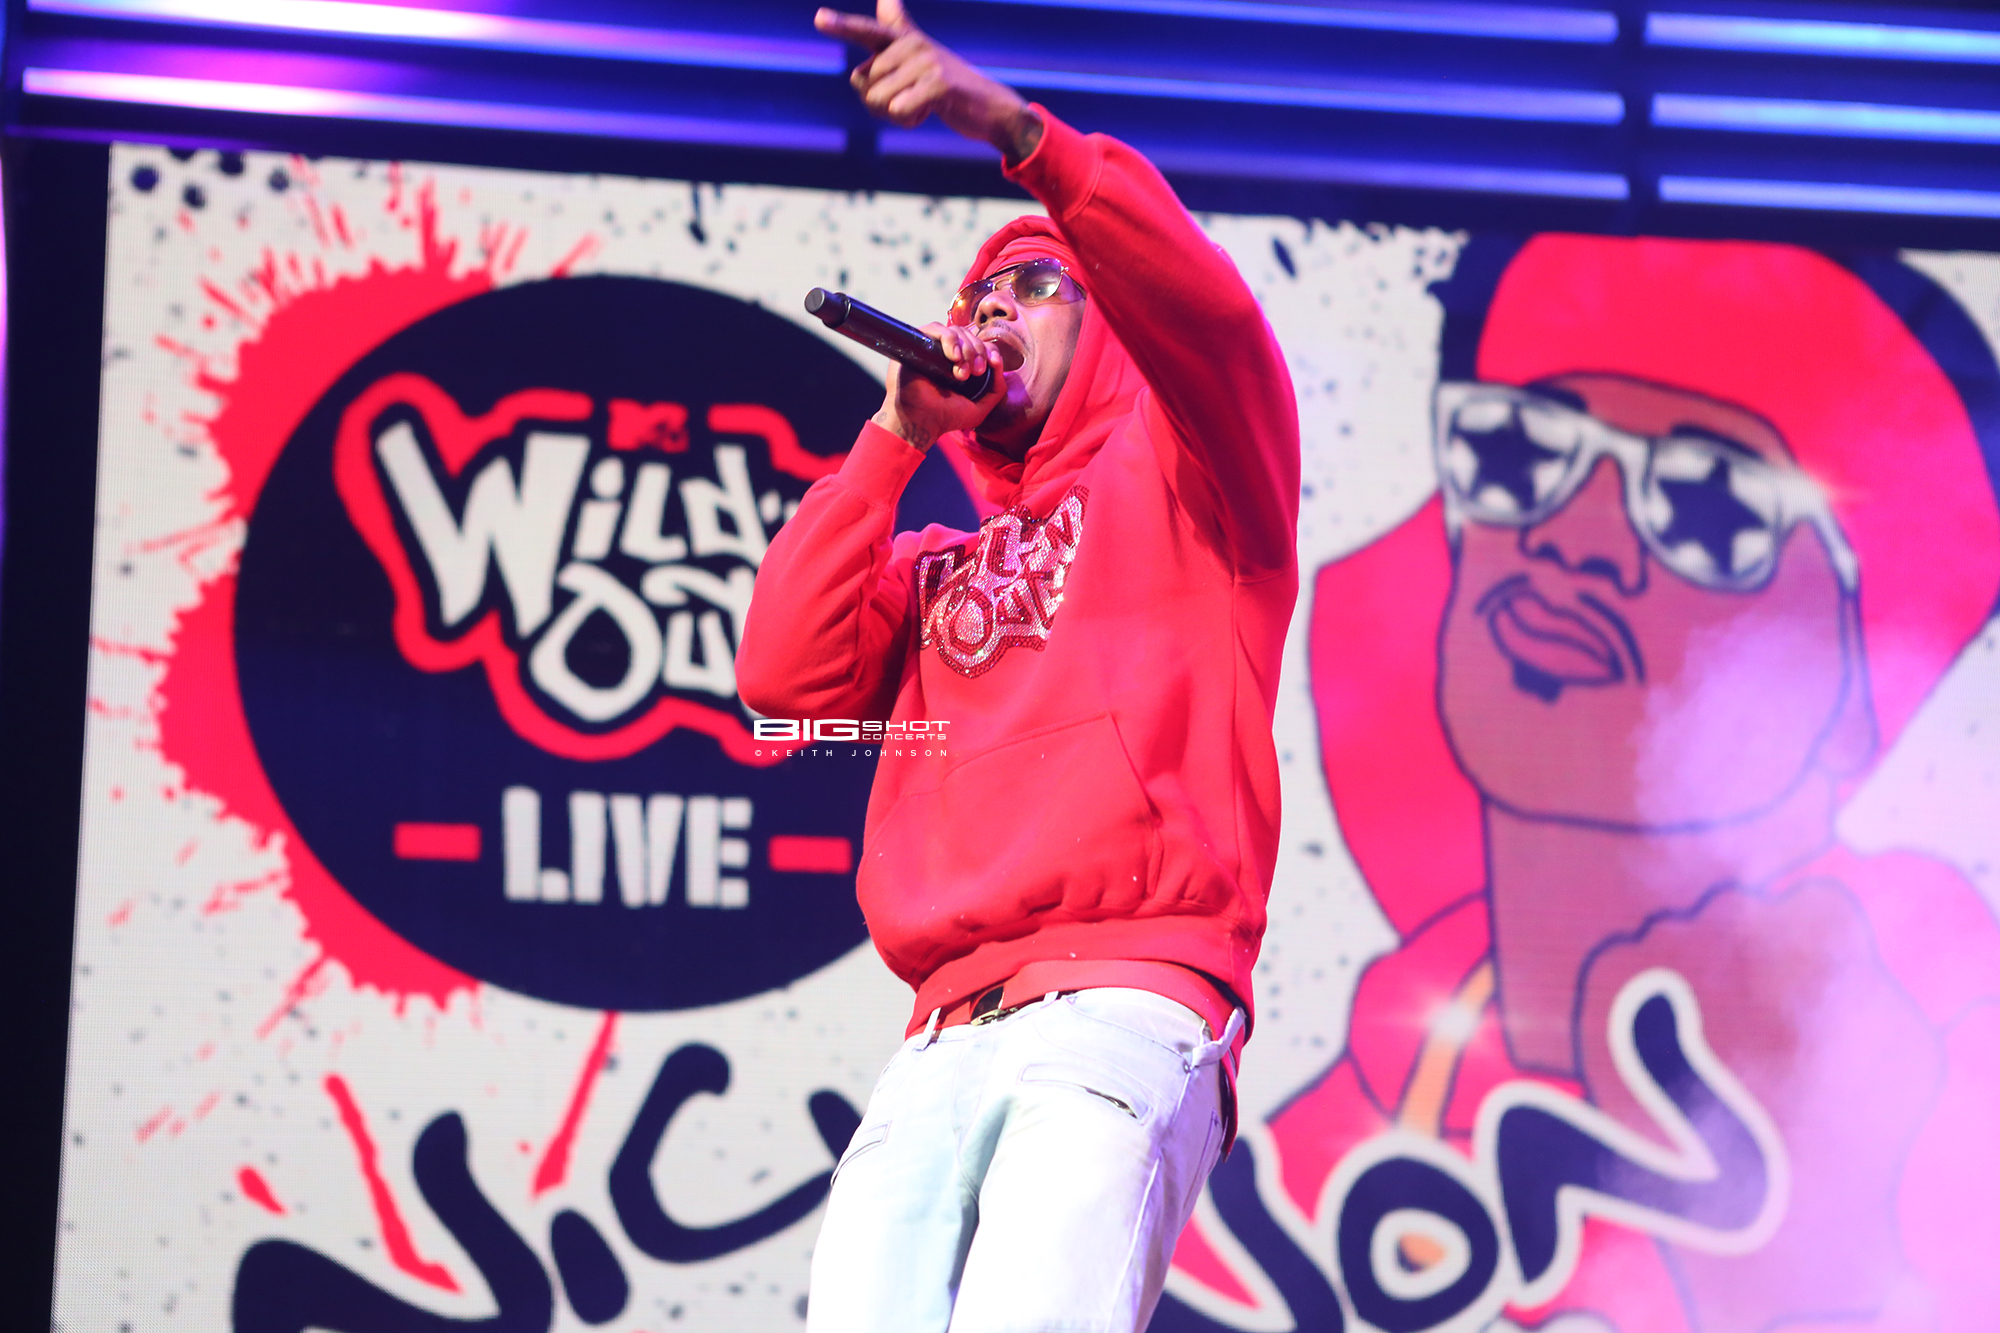 MTV Wild 'N Out Live 2020